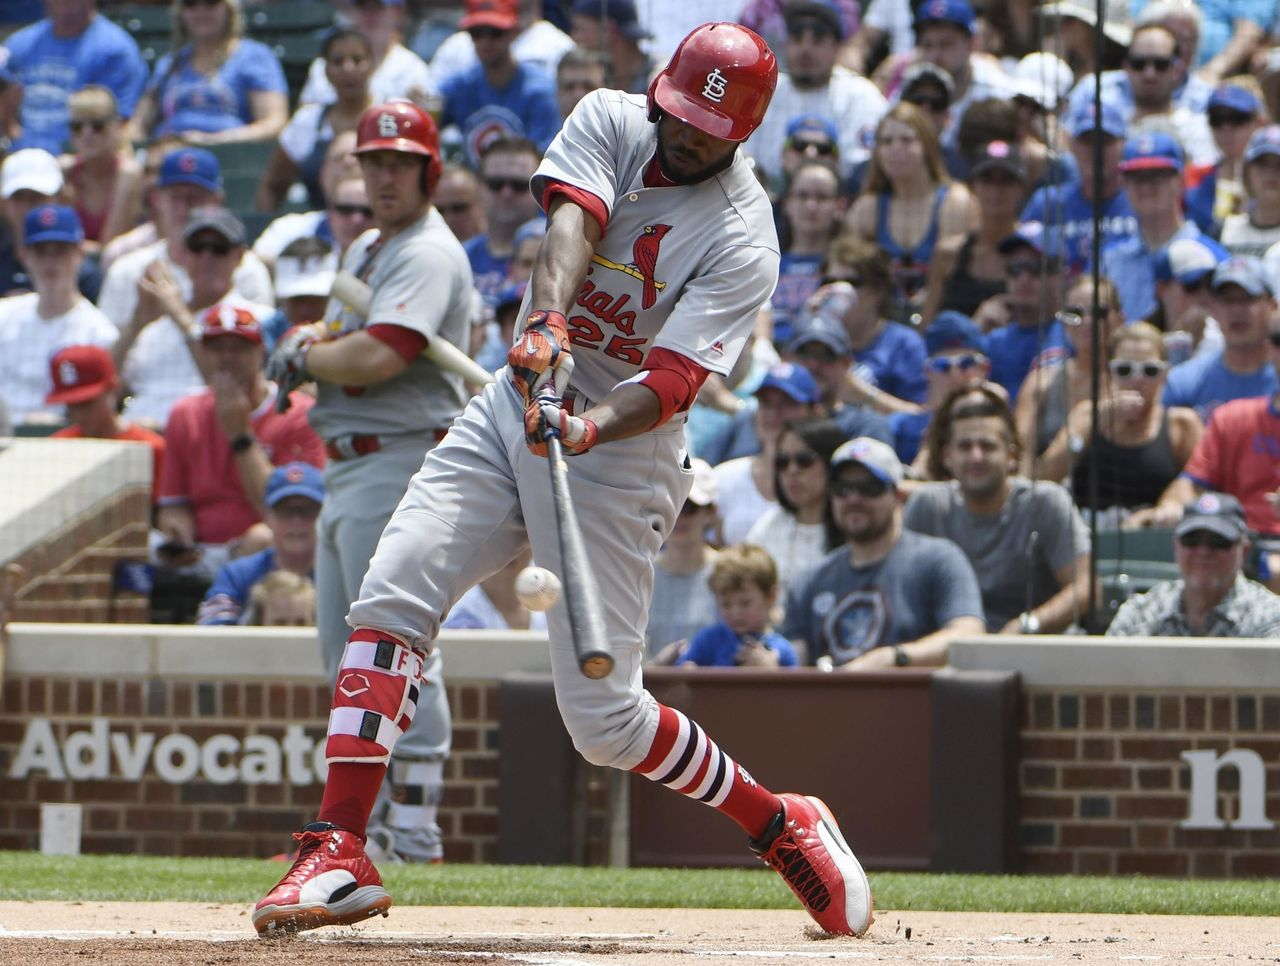 Cropped 2017 07 21t210922z 1871839431 nocid rtrmadp 3 mlb st louis cardinals at chicago cubs